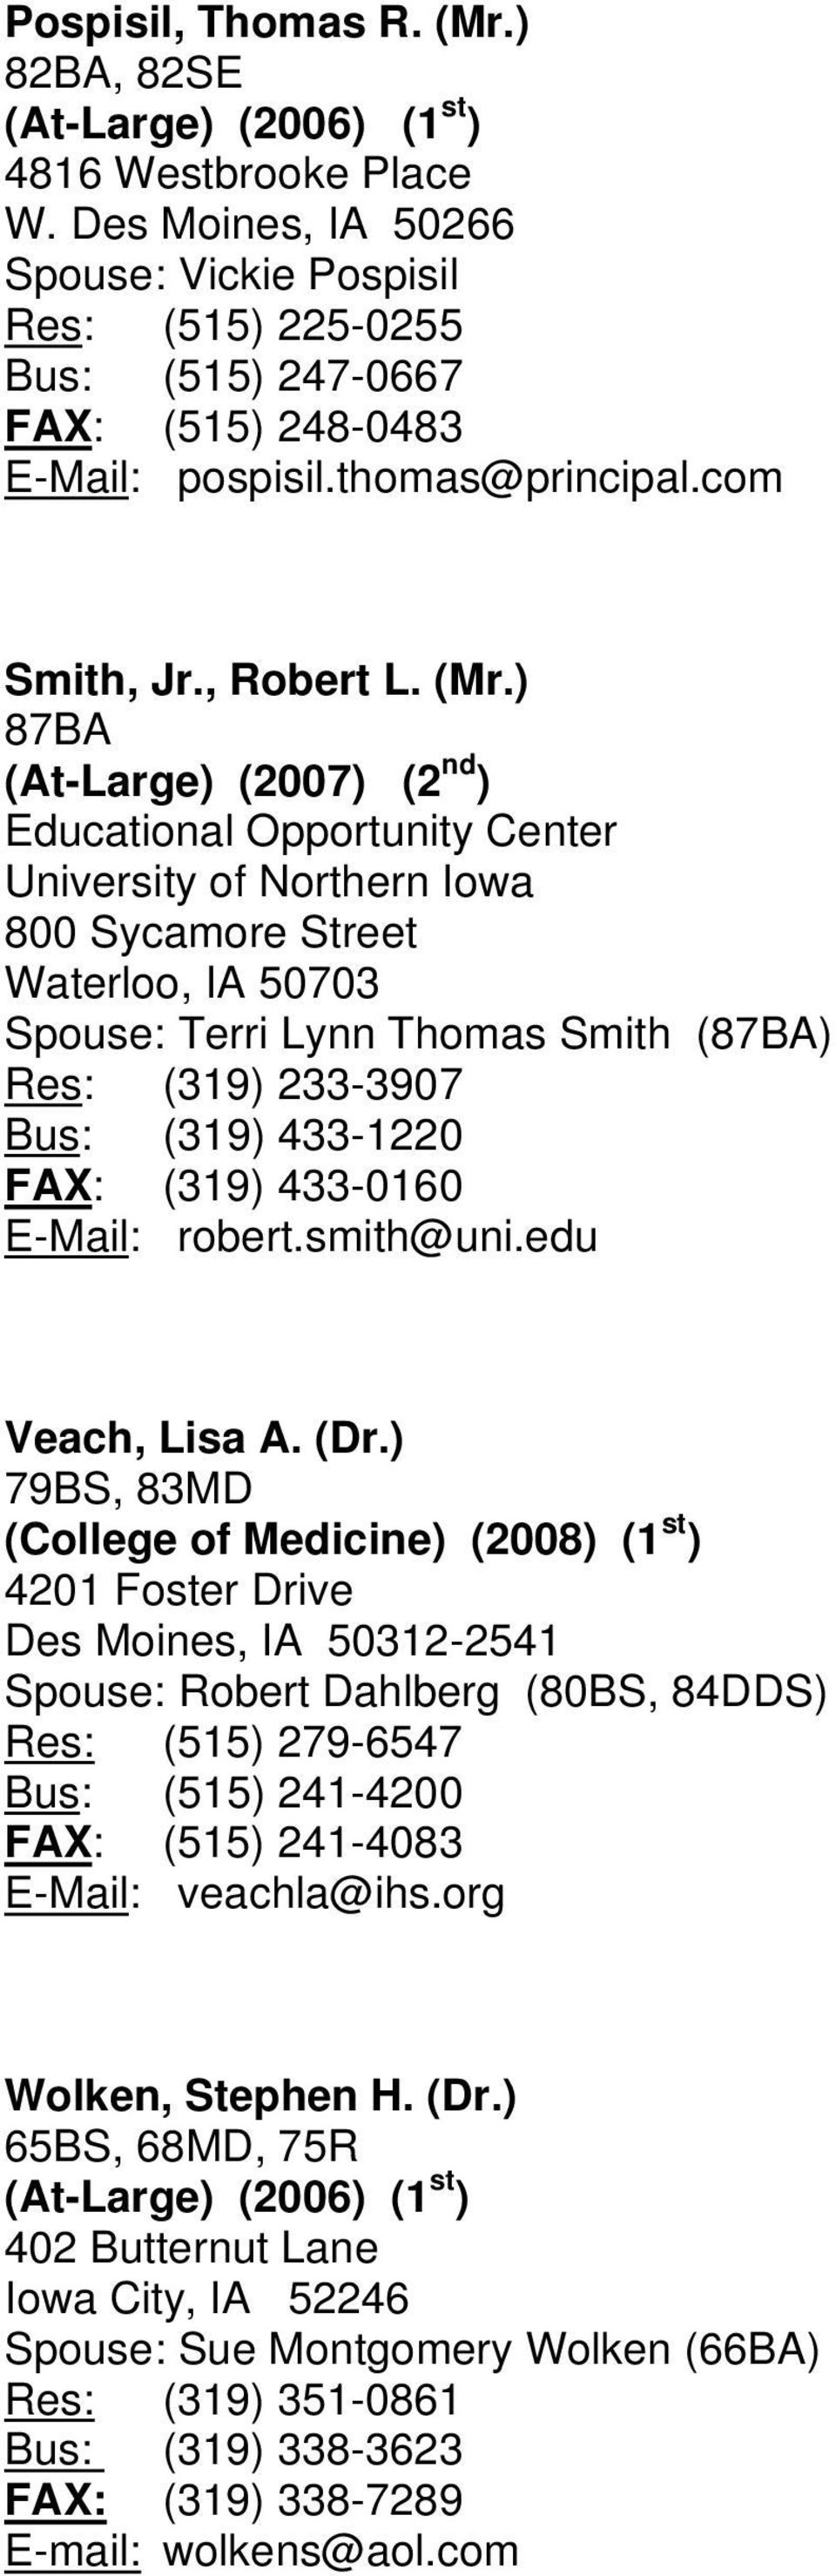 ) 87BA (At-Large) (2007) (2 nd ) Educational Opportunity Center University of Northern Iowa 800 Sycamore Street Waterloo, IA 50703 Spouse: Terri Lynn Thomas Smith (87BA) Res: (319) 233-3907 Bus: